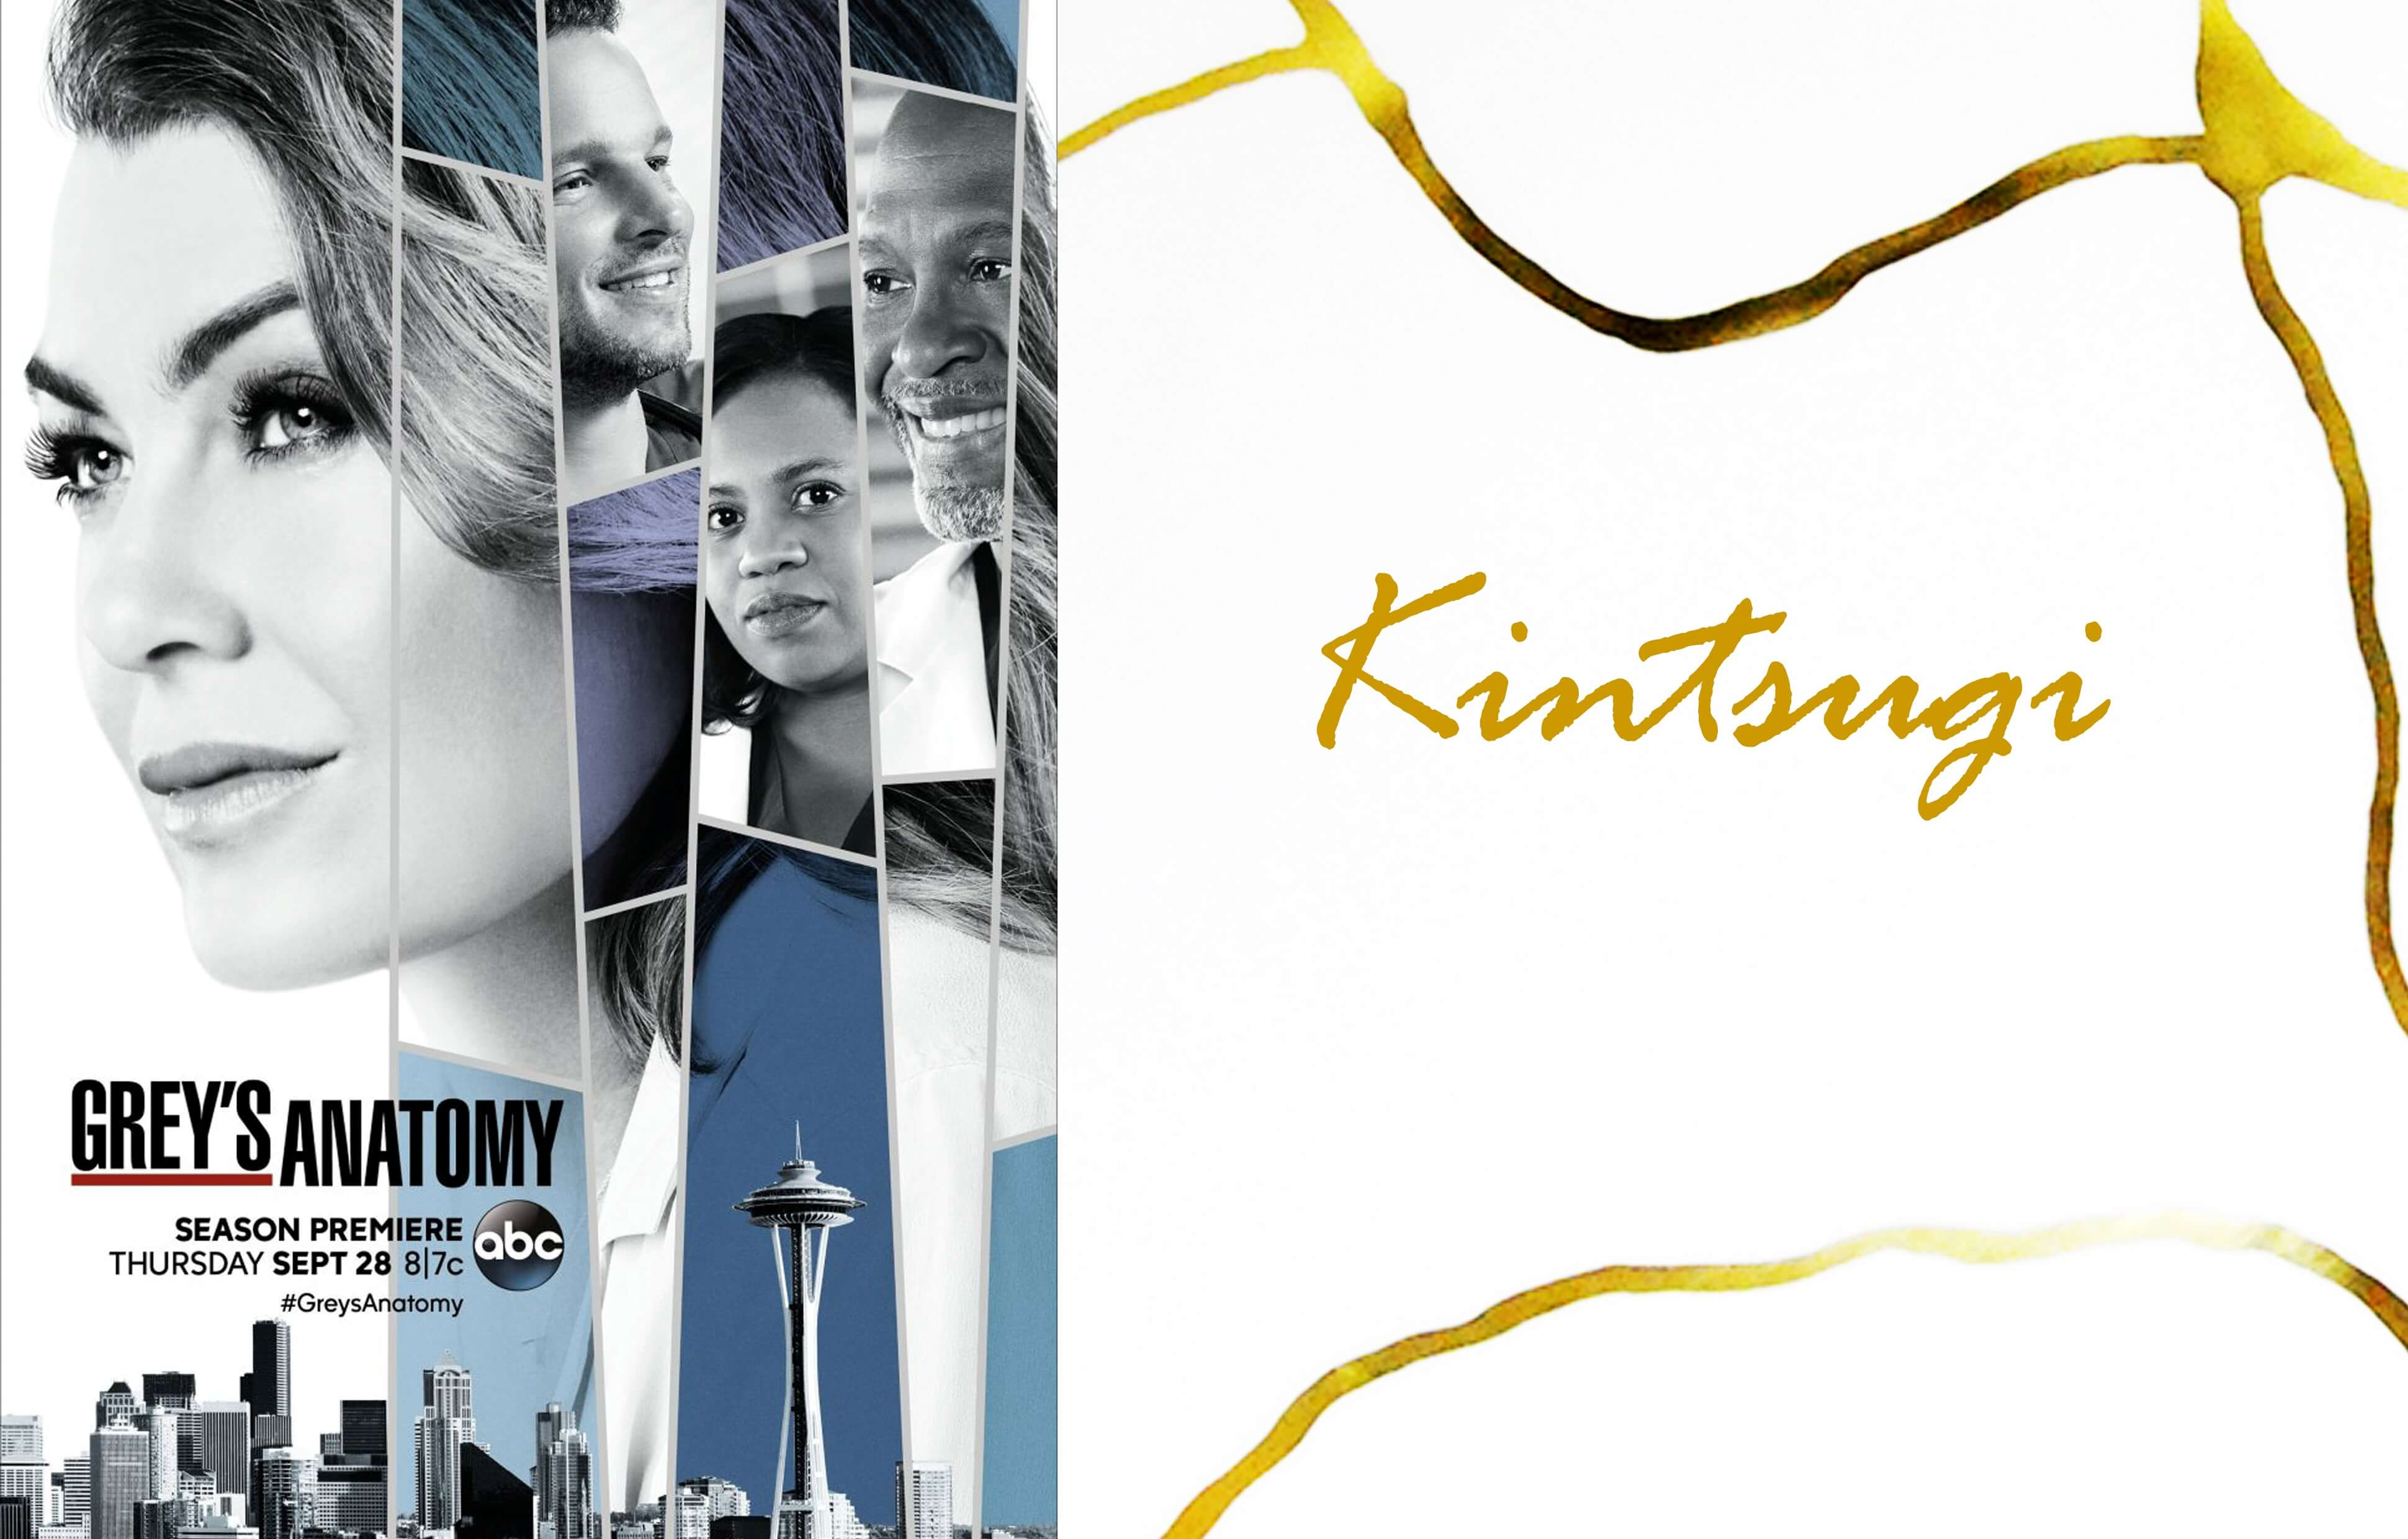 Greys Anatomy Also Speaks Of Kintsugi The Art Of Repairing Wounds